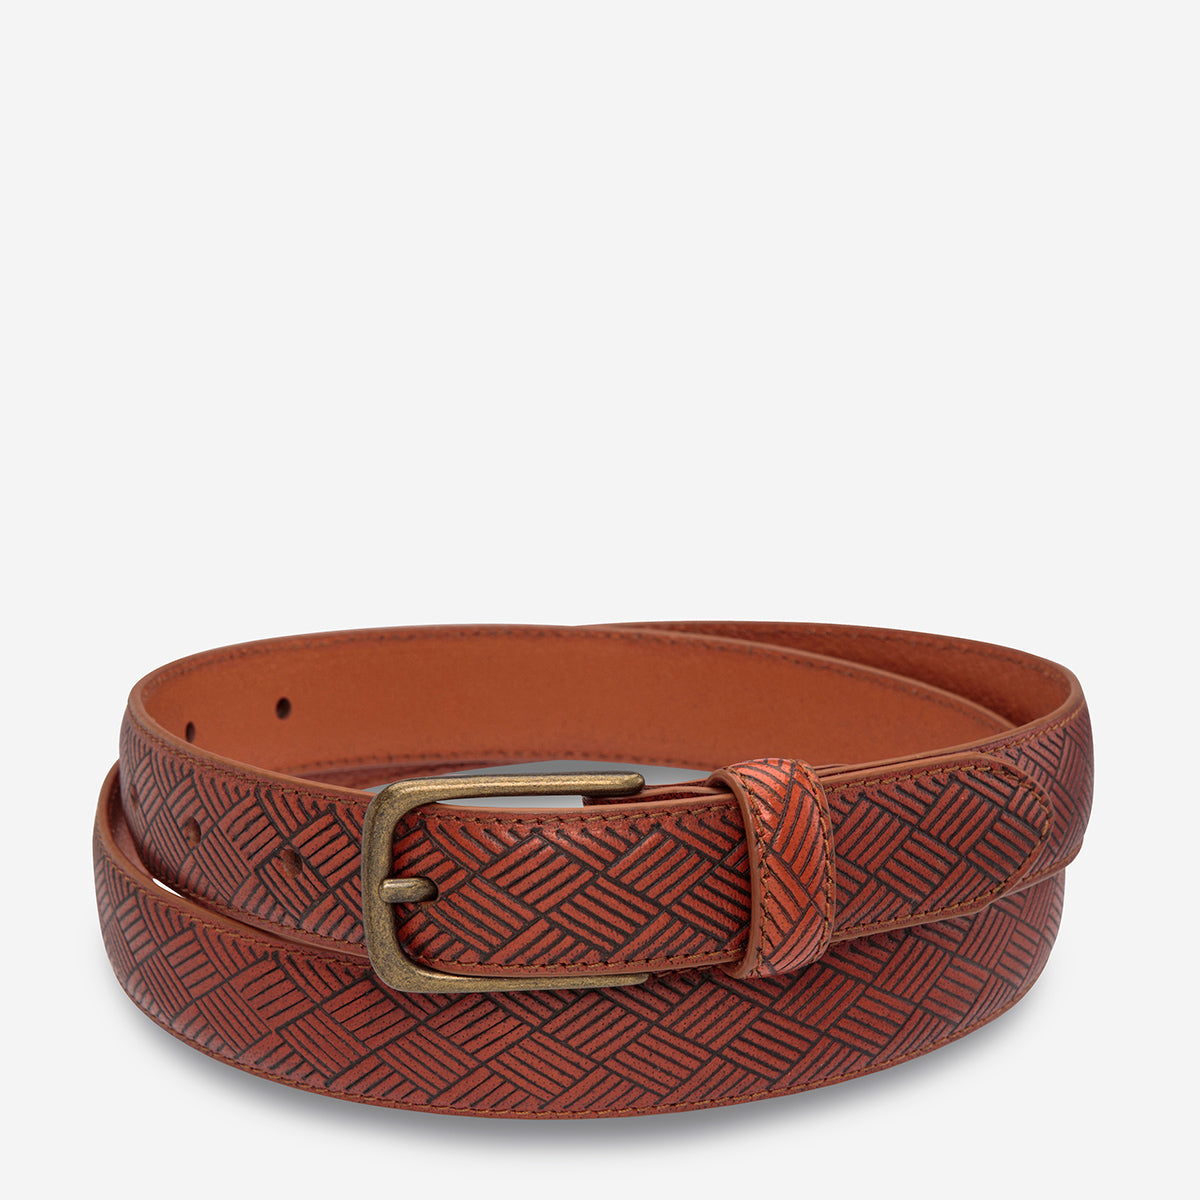 Status Anxiety Life After Men's Leather Belt - Tan